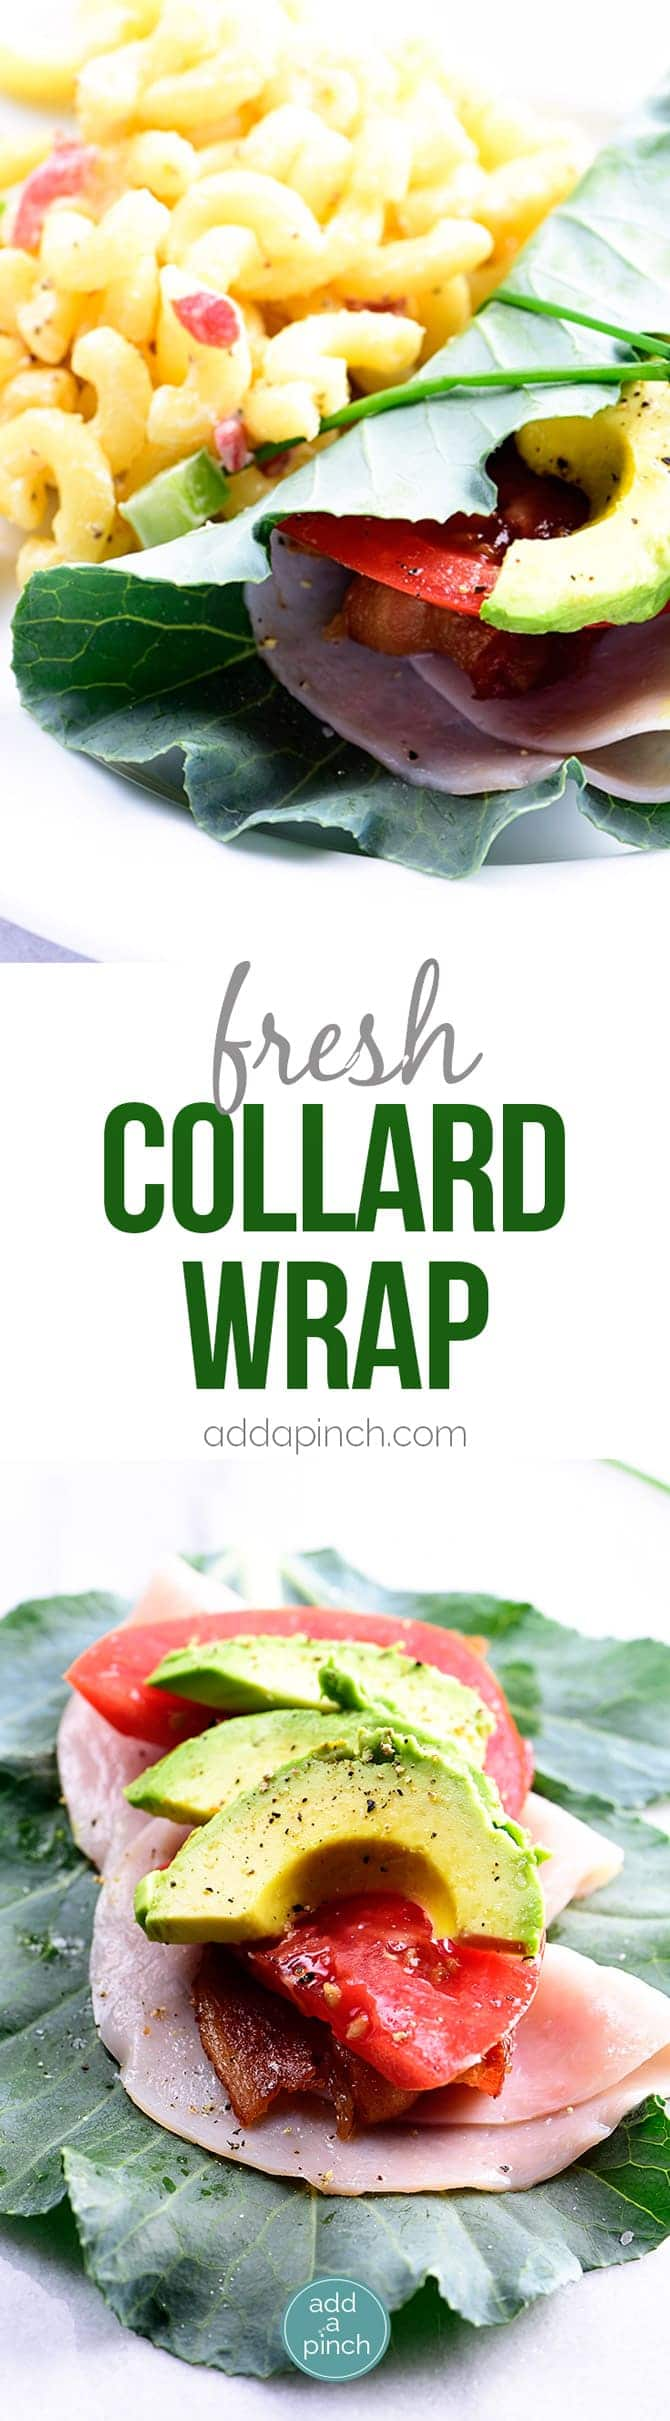 Collard Wrap Recipe - Collard wraps make a fresh, delicious, and nutrient dense way to update your favorite wraps or sandwiches! Made with turkey, bacon, tomato and avocado, these collard wraps are sure to become a favorite! // addapinch.com